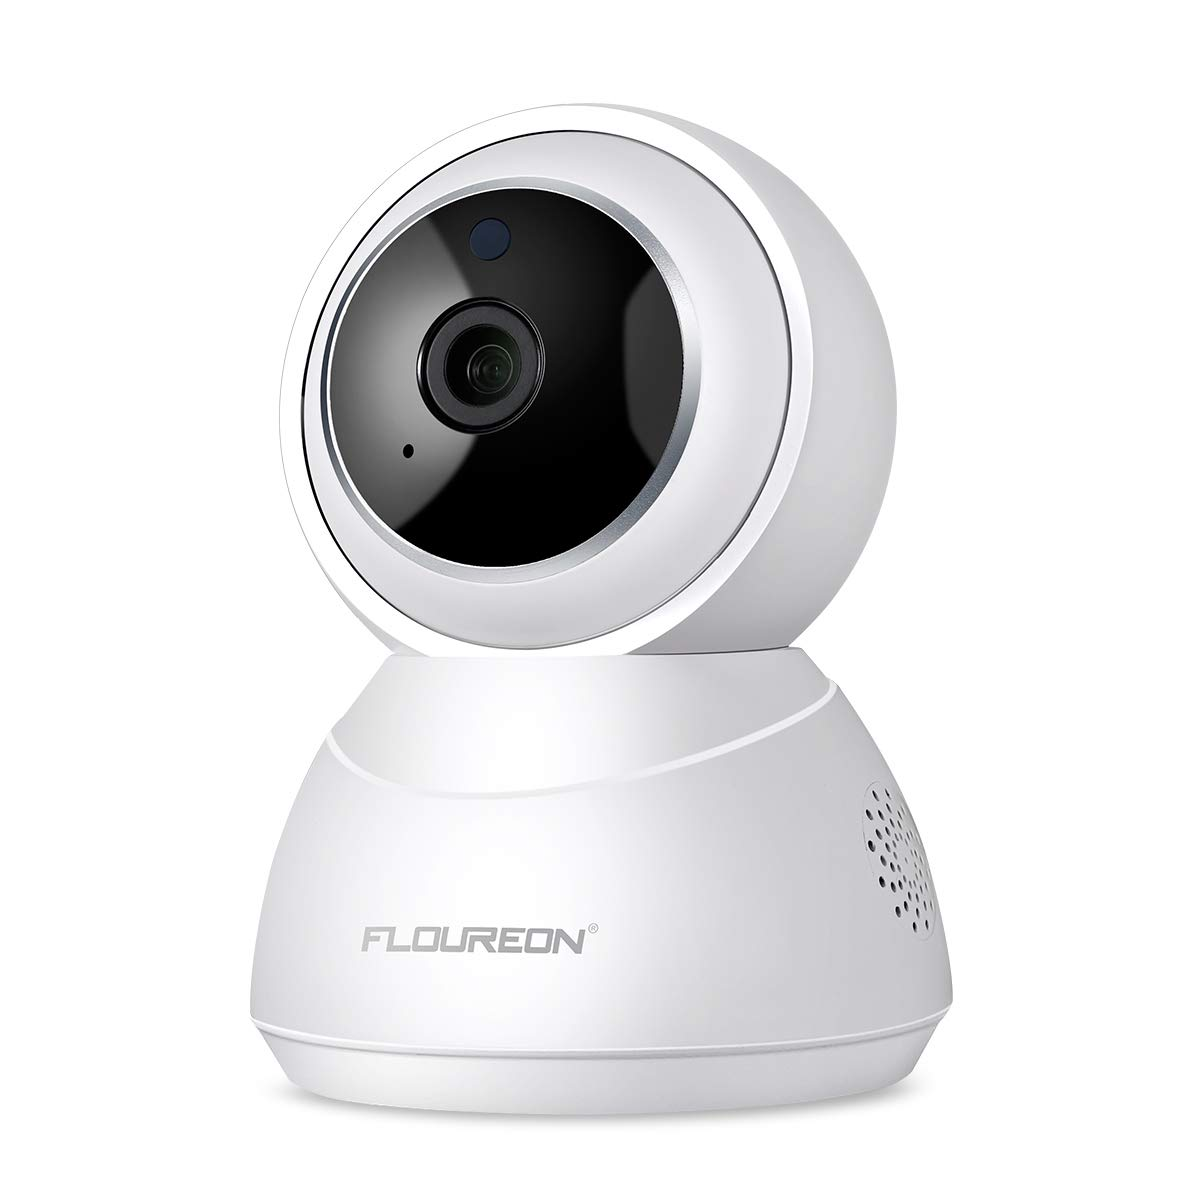 FLOUREON YI Cloud Home Camera, 1080P HD Pan/Tilt/Zoom Wireless IP Security Surveillance System with Smart Tracking, Night Vision Two Way Audio for Baby Monitor Pet Camera Home Security (White)